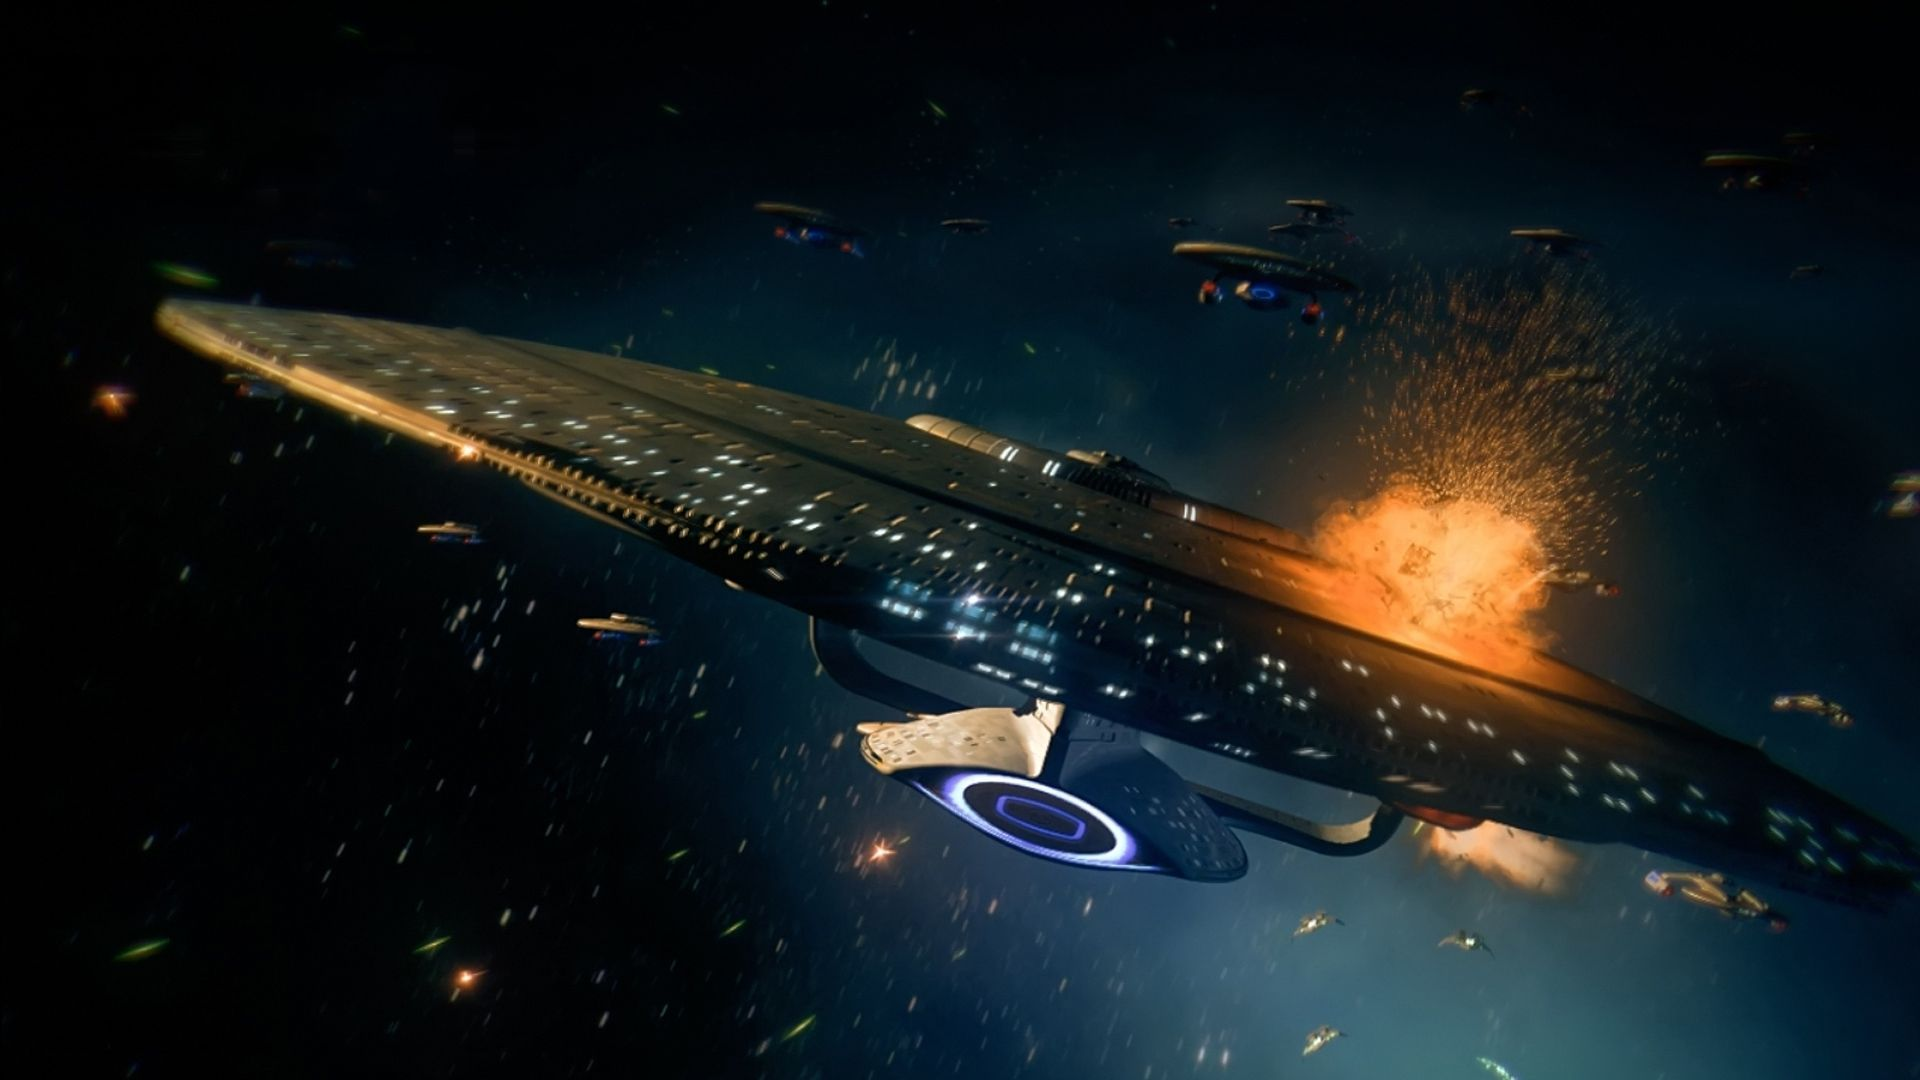 Star Trek Hd Wallpapers Hd Wallpapers Available In Different Resolution And Sizes For Our Computer Desktop Backgrounds Laptop Mobi Space Battle Star